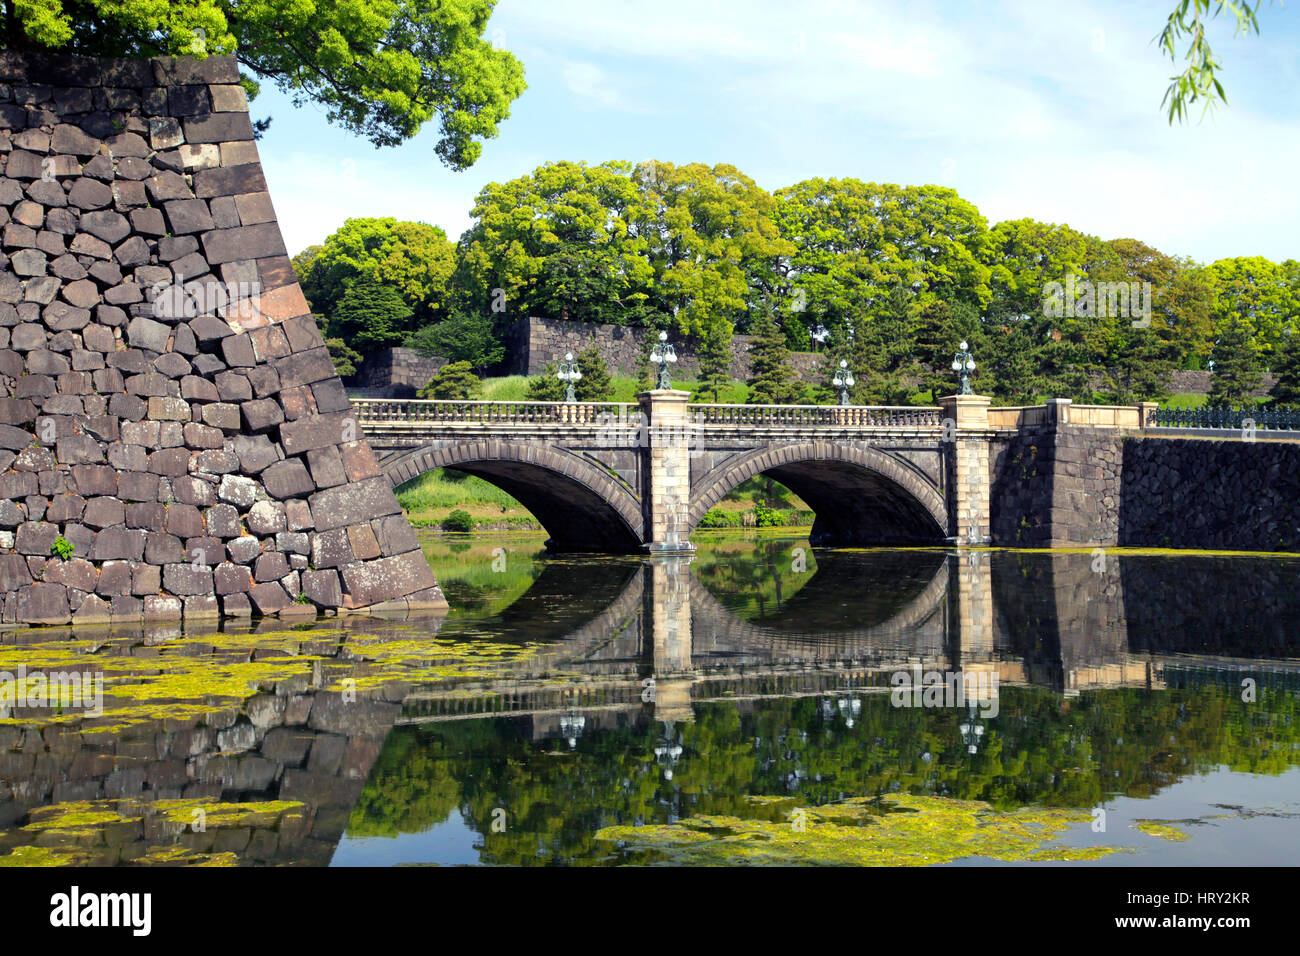 Nijubashi Bridge at Imperial Palace Tokyo Japan - Stock Image